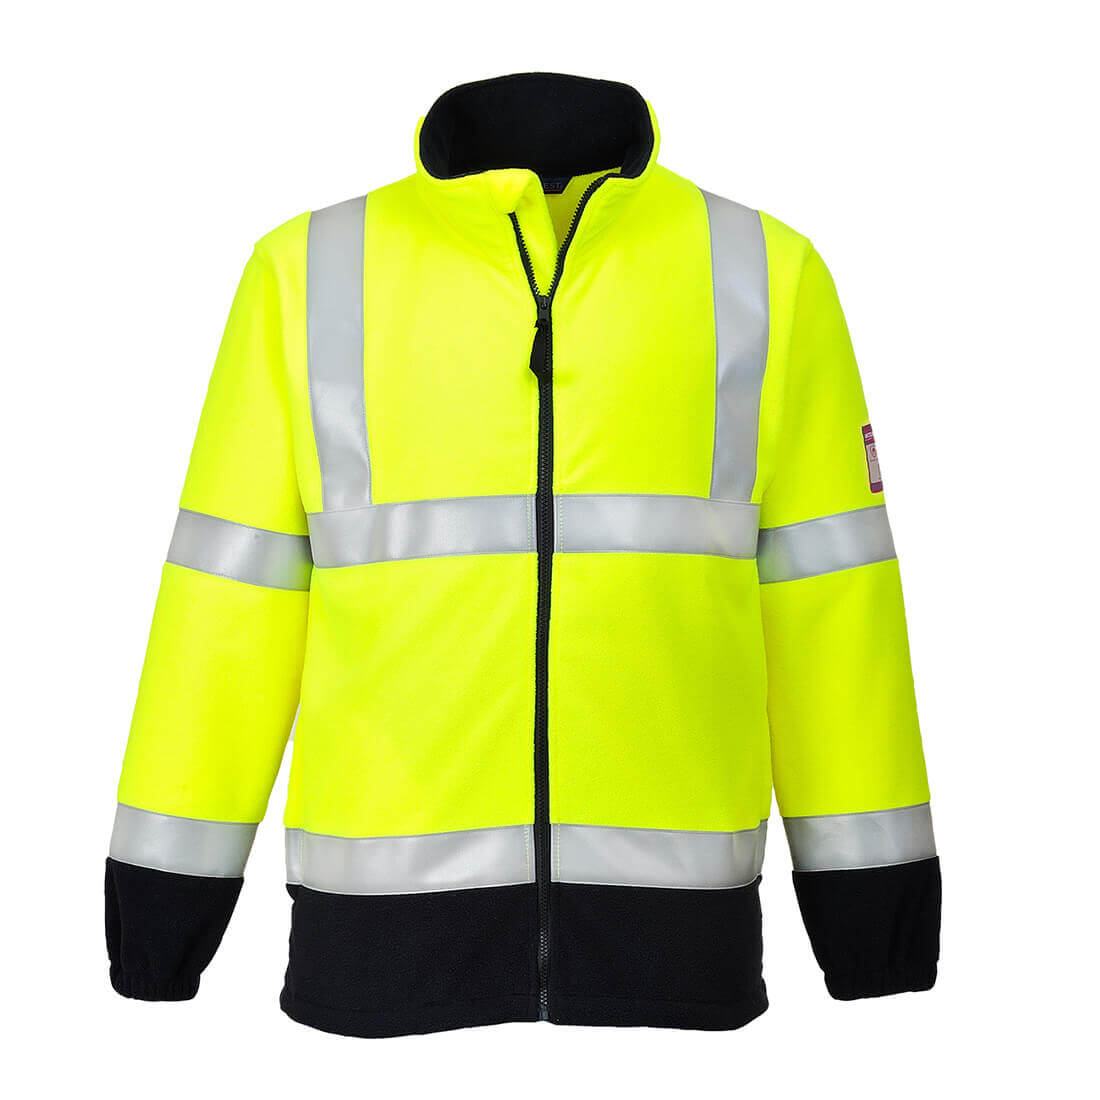 Image of Modaflame Flame Resistant Hi-Vis Fleece Yellow L